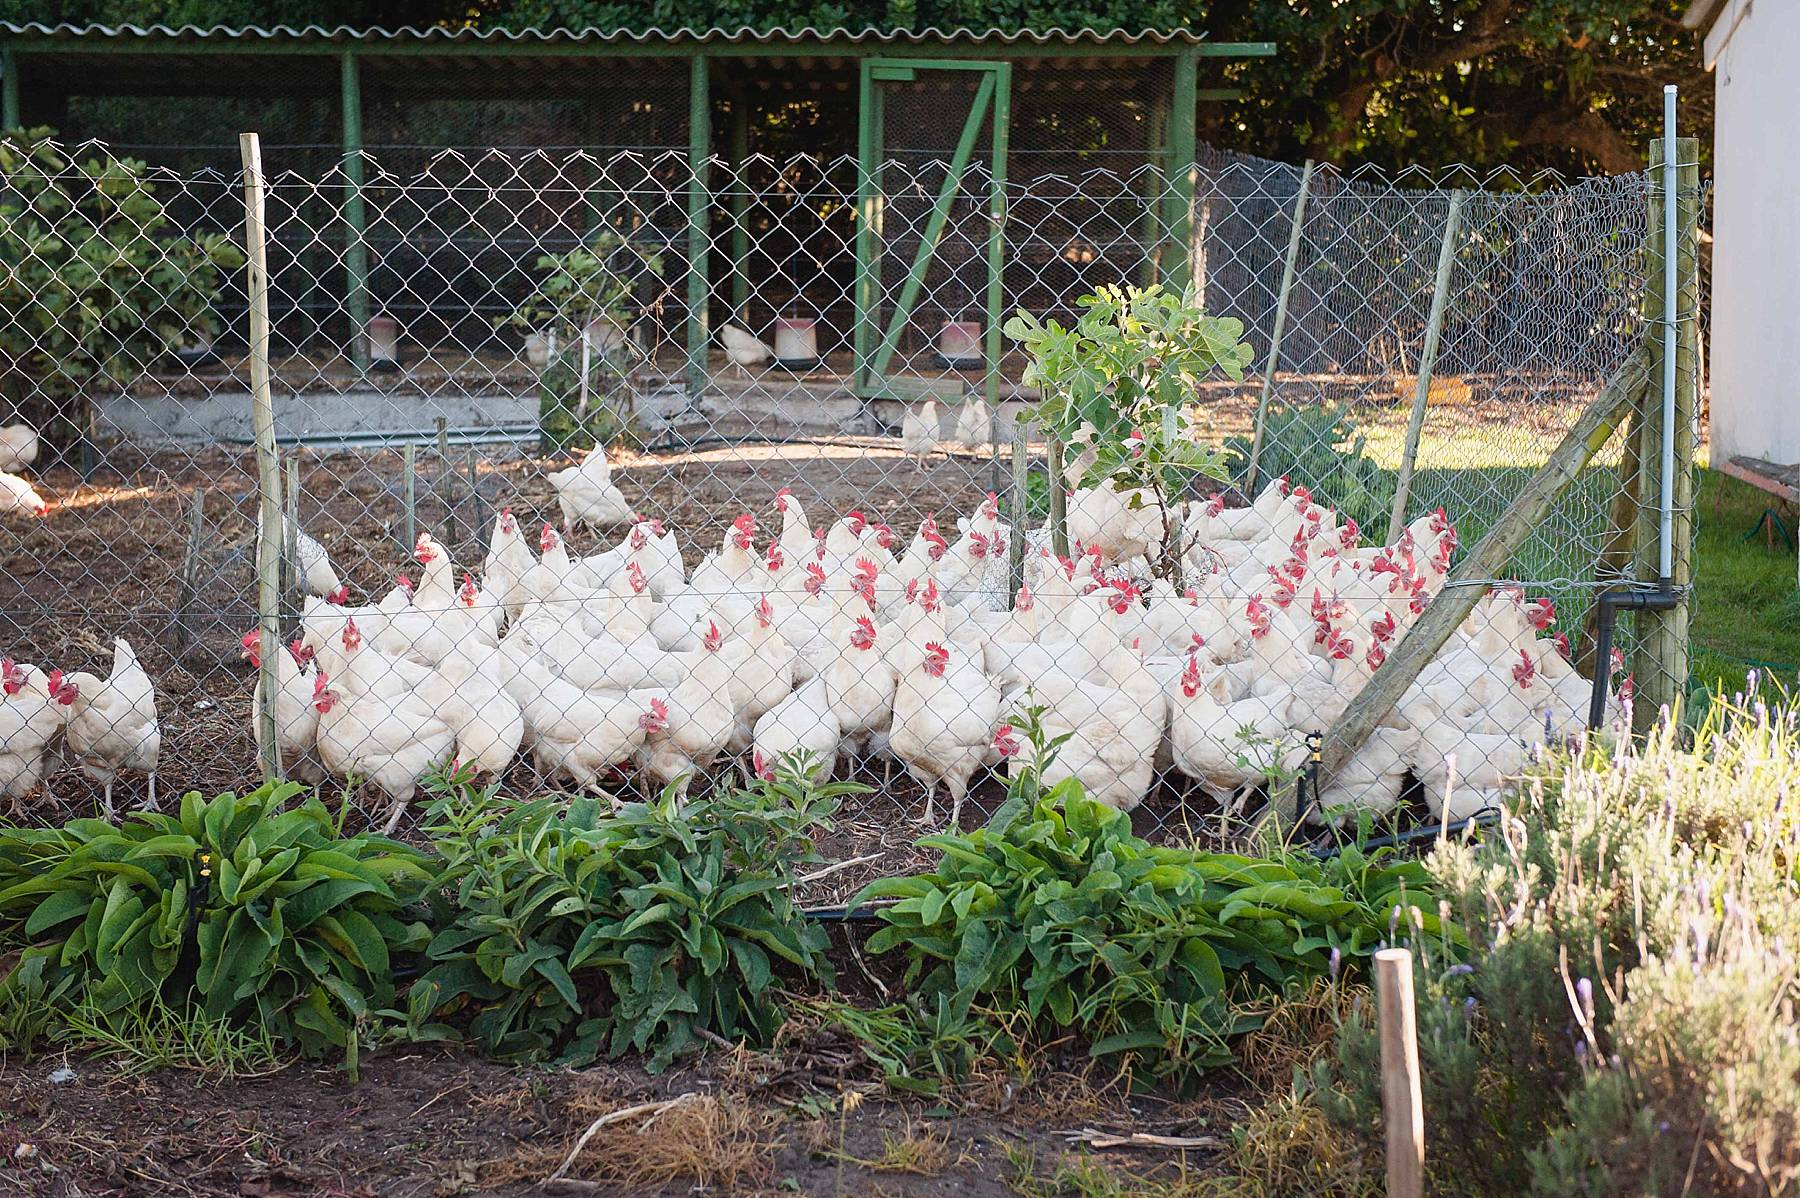 The chicken coup at Grootbos (Angelique Smith Photography)